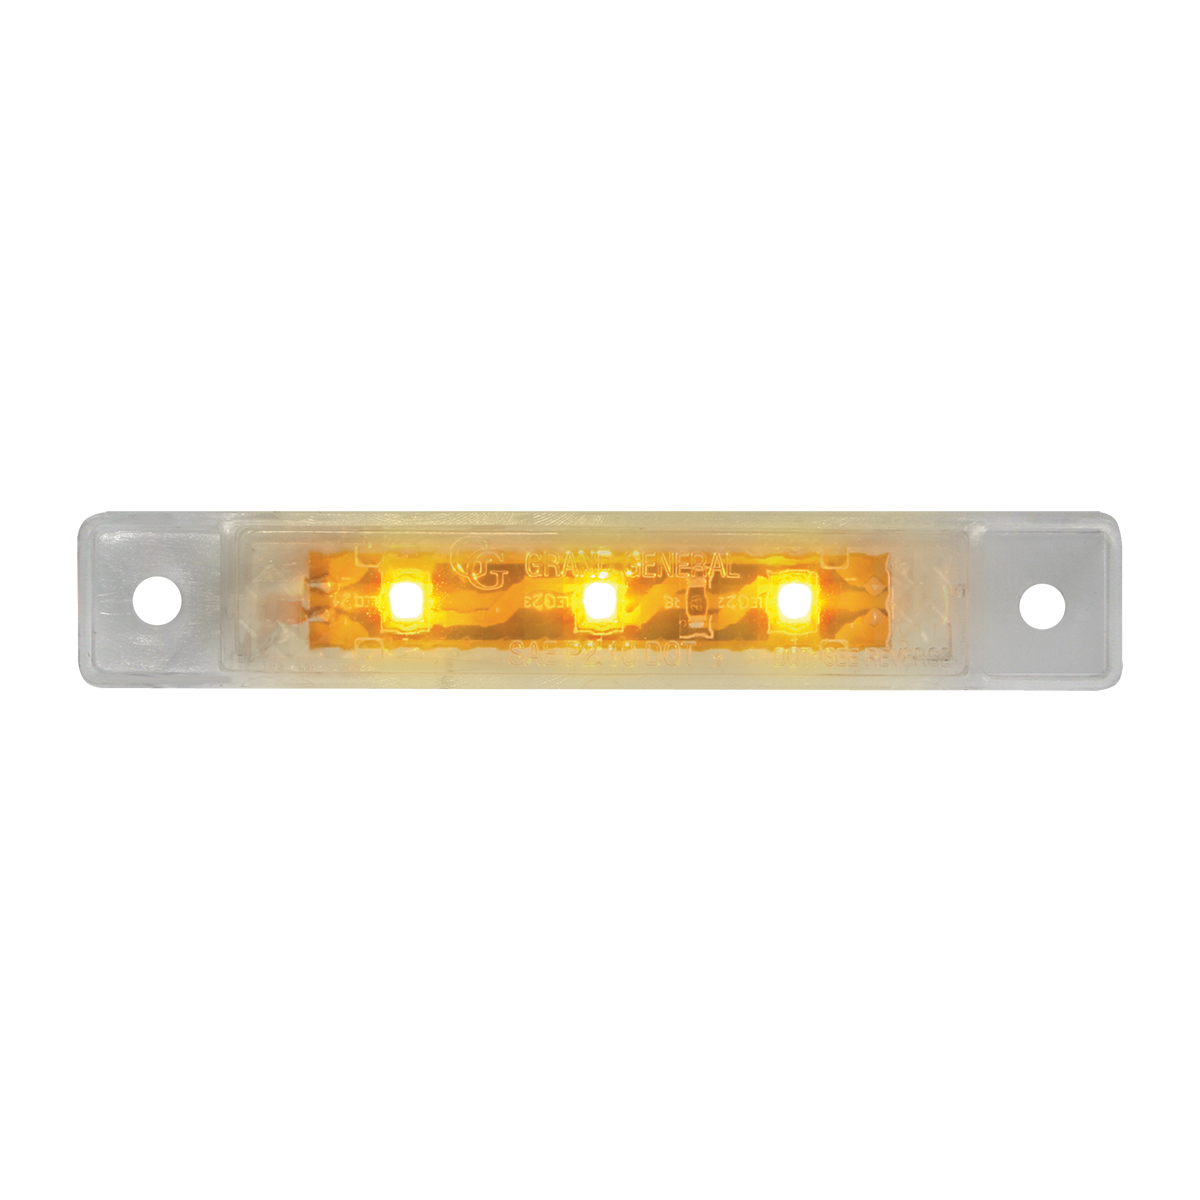 "76281 3.5"" Ultra Thin LED Marker Light in Clear Lens"